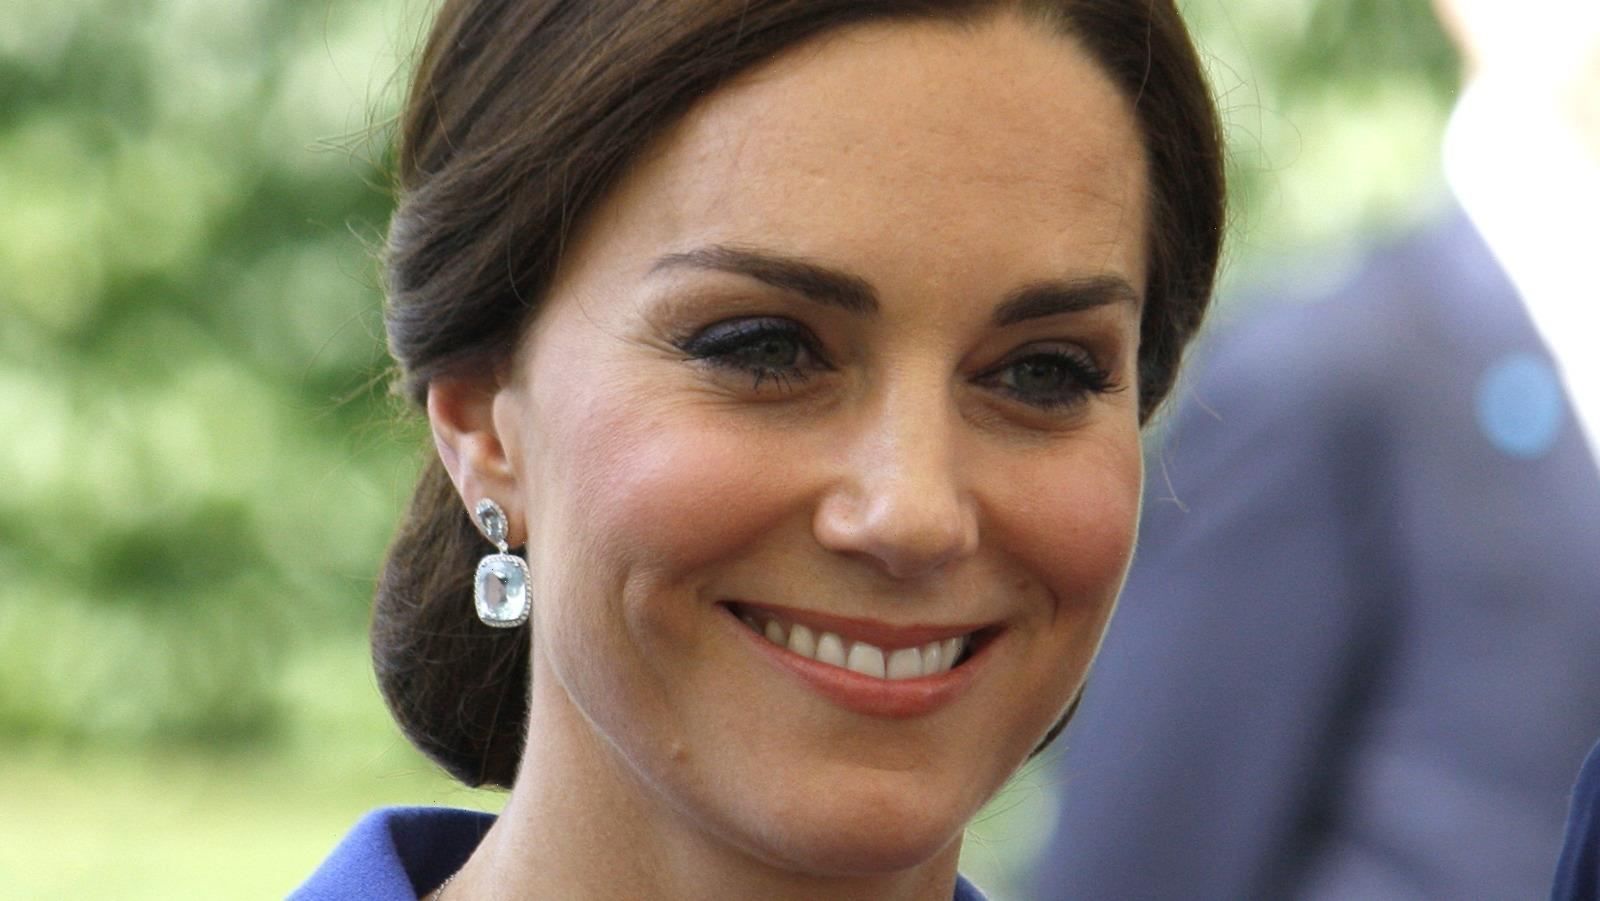 Why Kate Middleton's Latest Shopping Trip Has People Talking